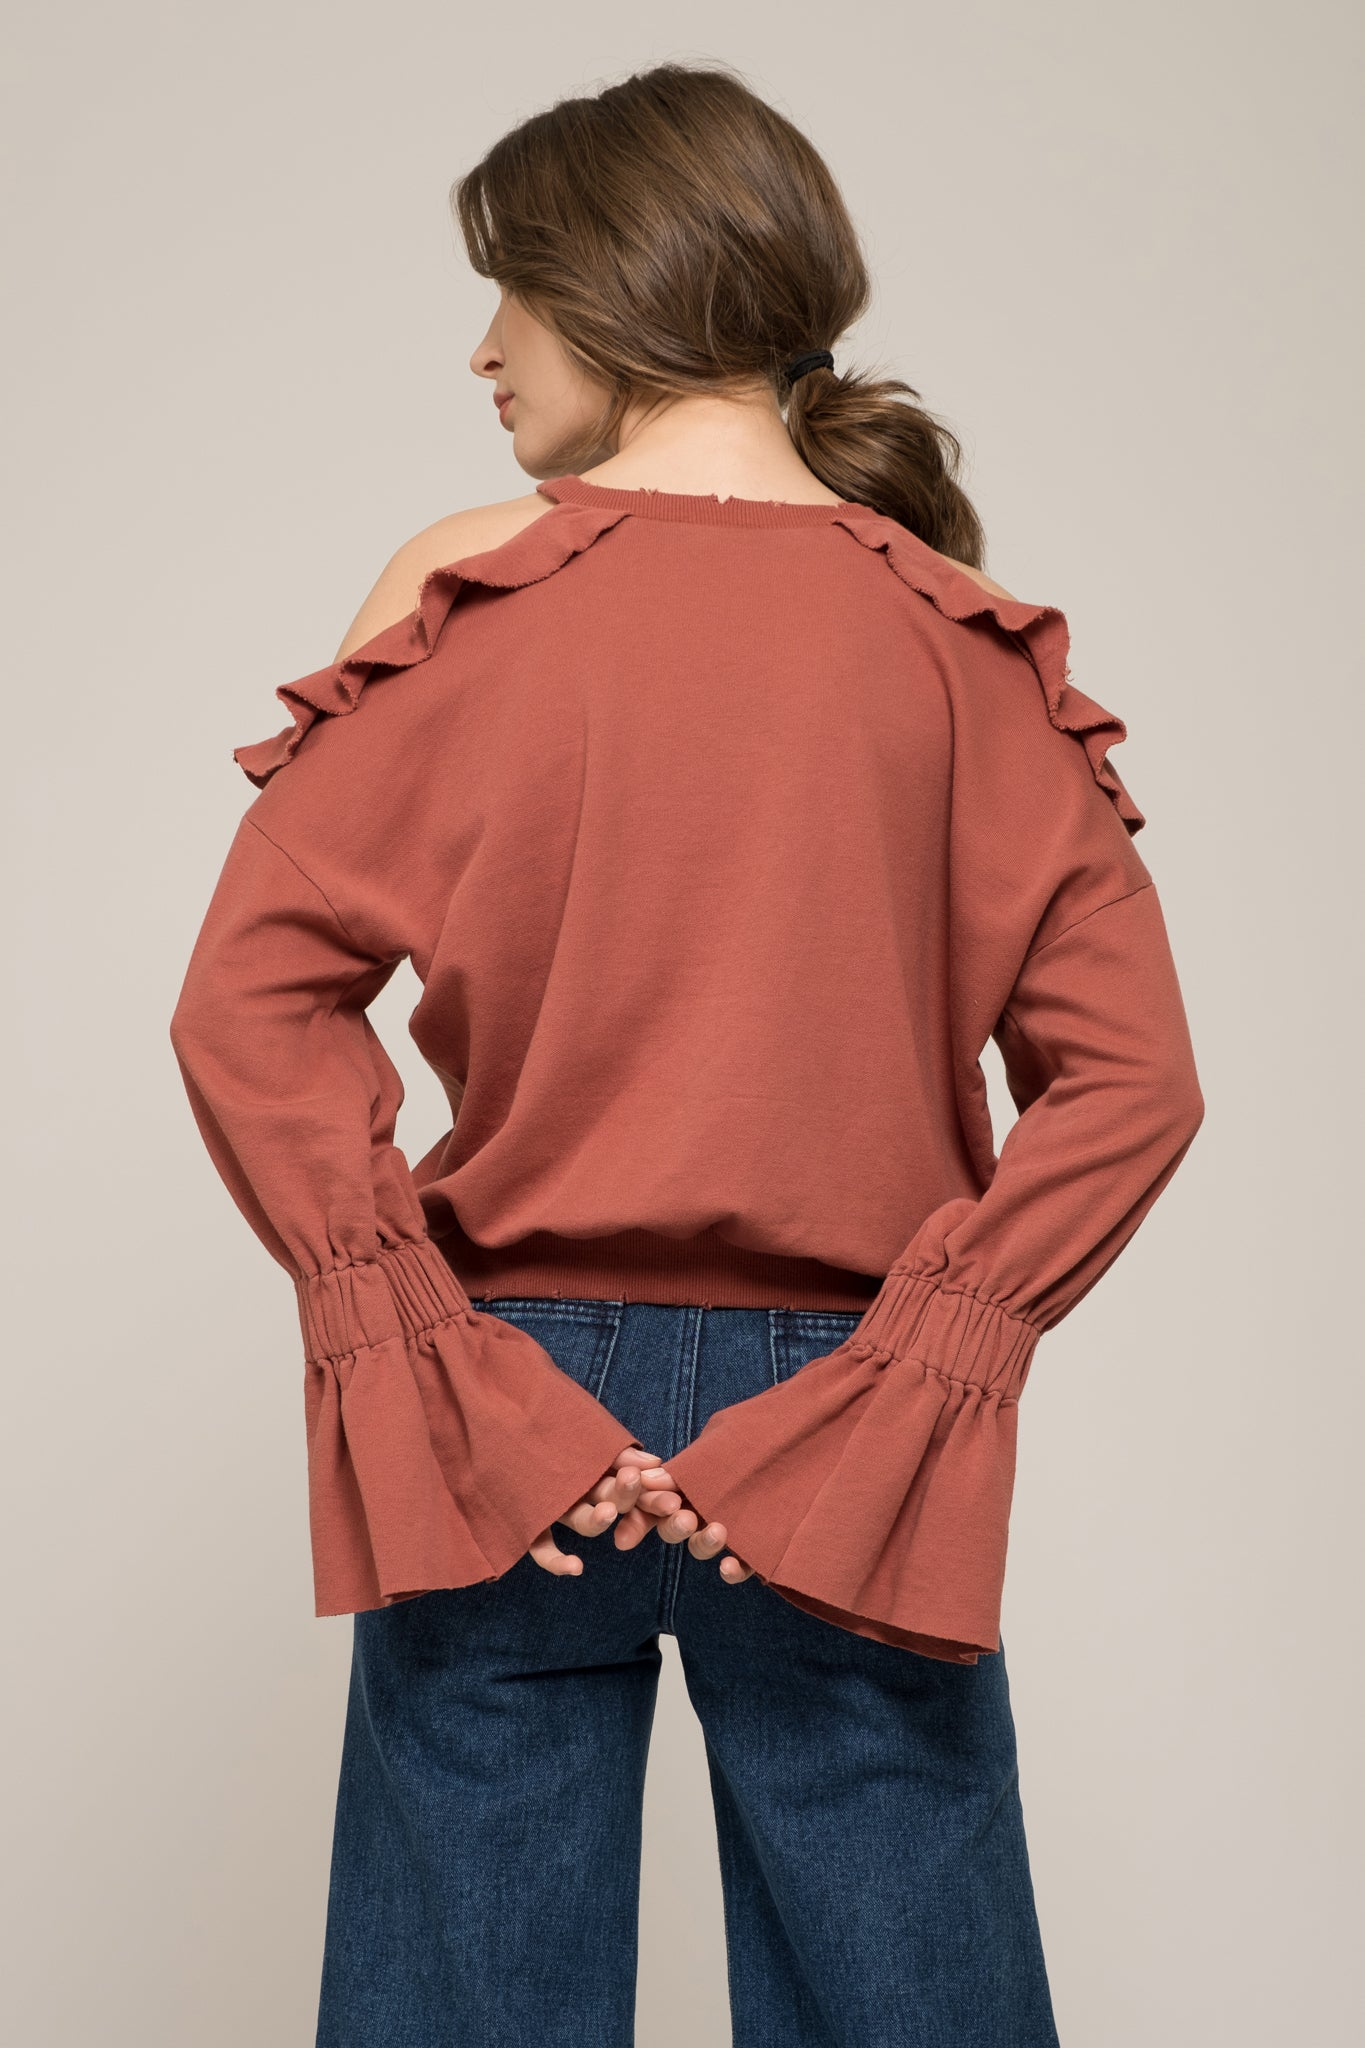 COLD SHOULDER RUFFLE TOP WITH DISTRESSED HEM